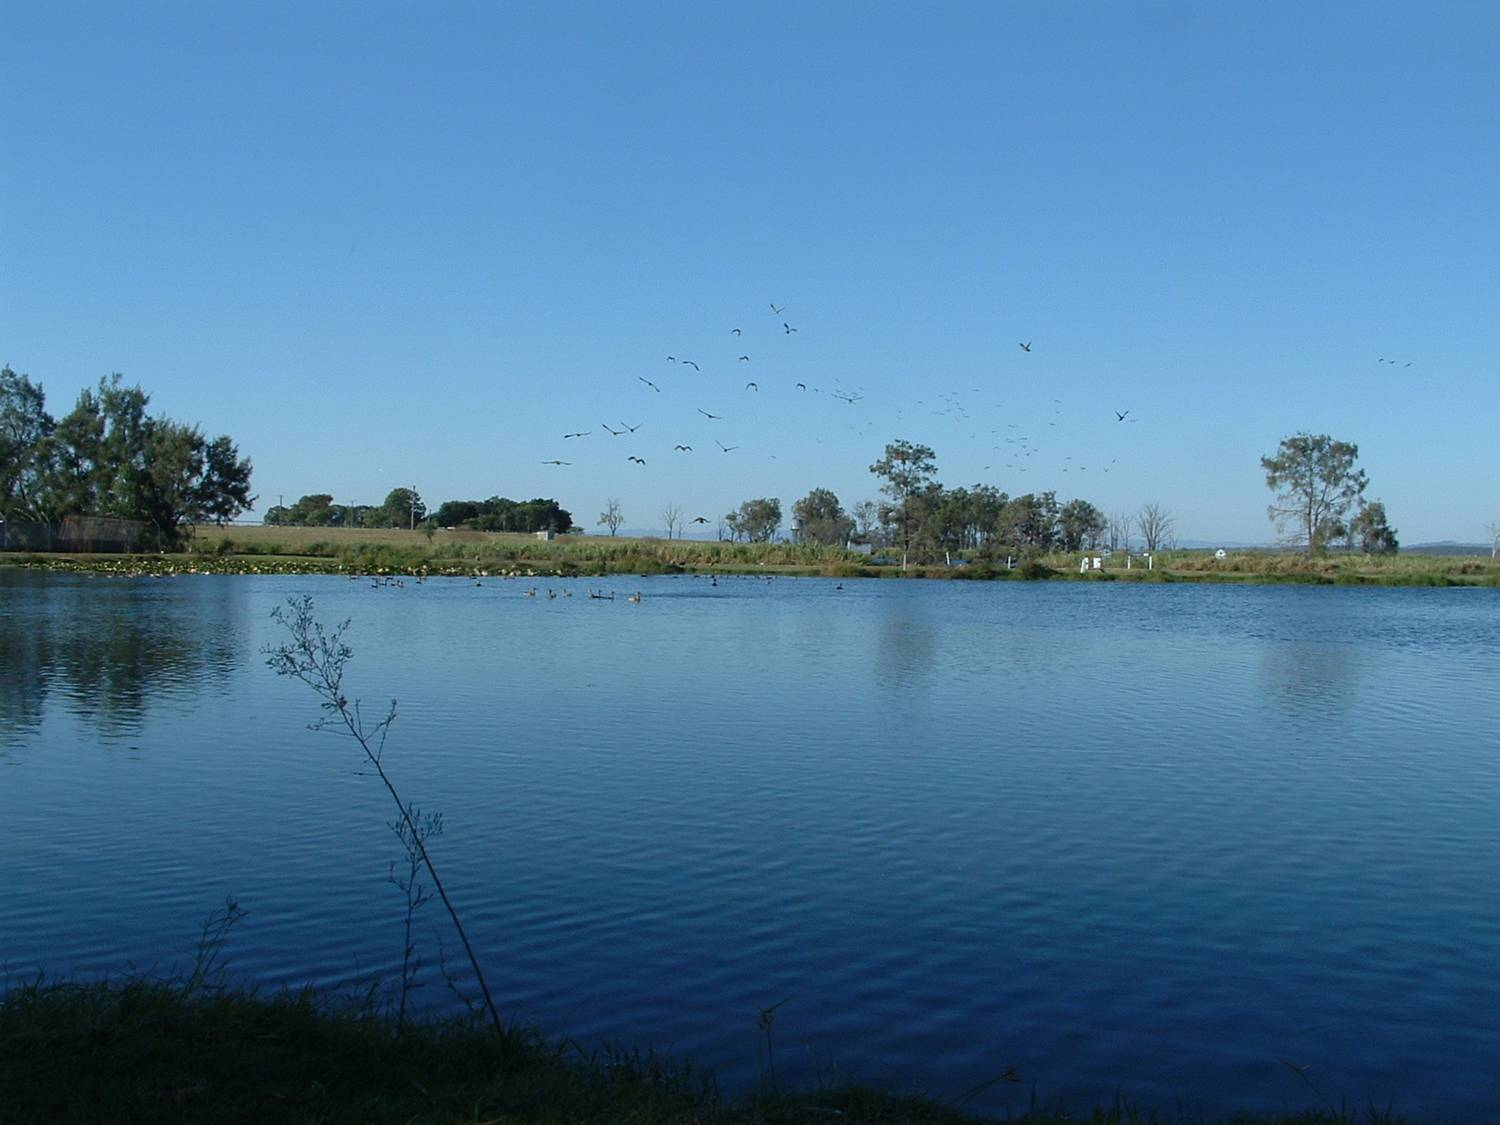 birds in flight over lake at Gatton Environmental Park